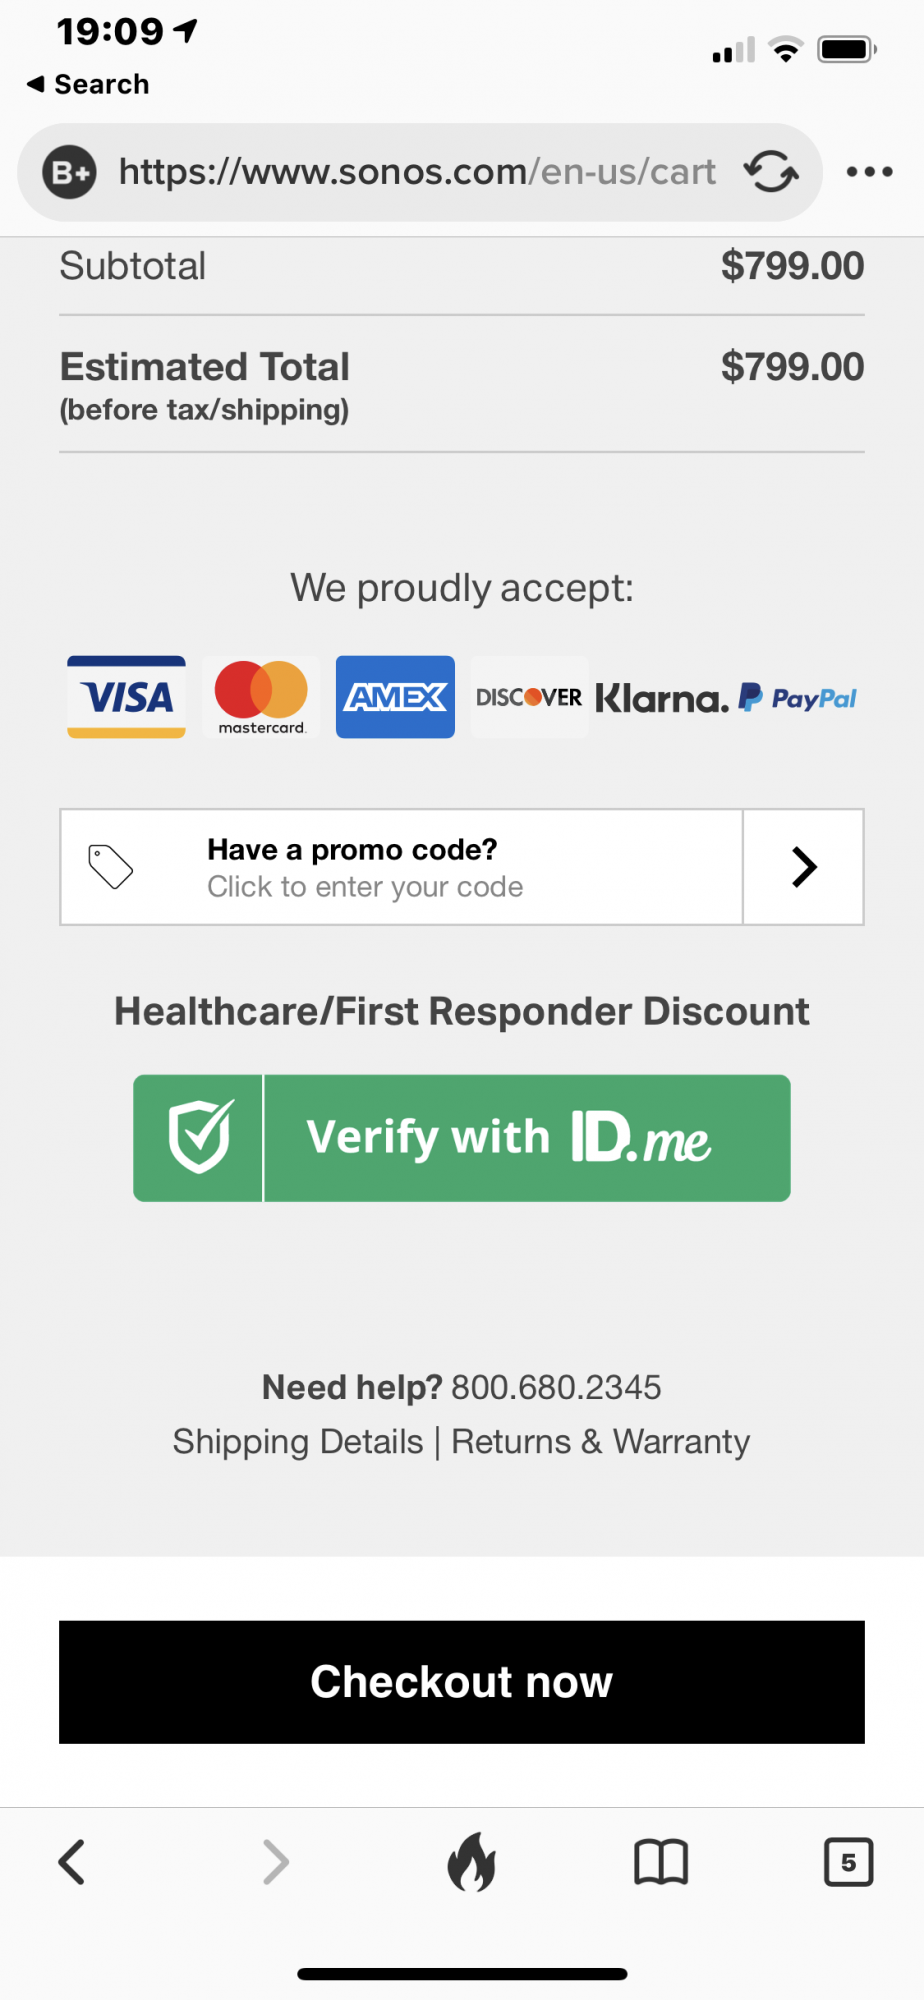 Deals Sonos Offers 20 Off Sitewide for Healthcare Workers While ...